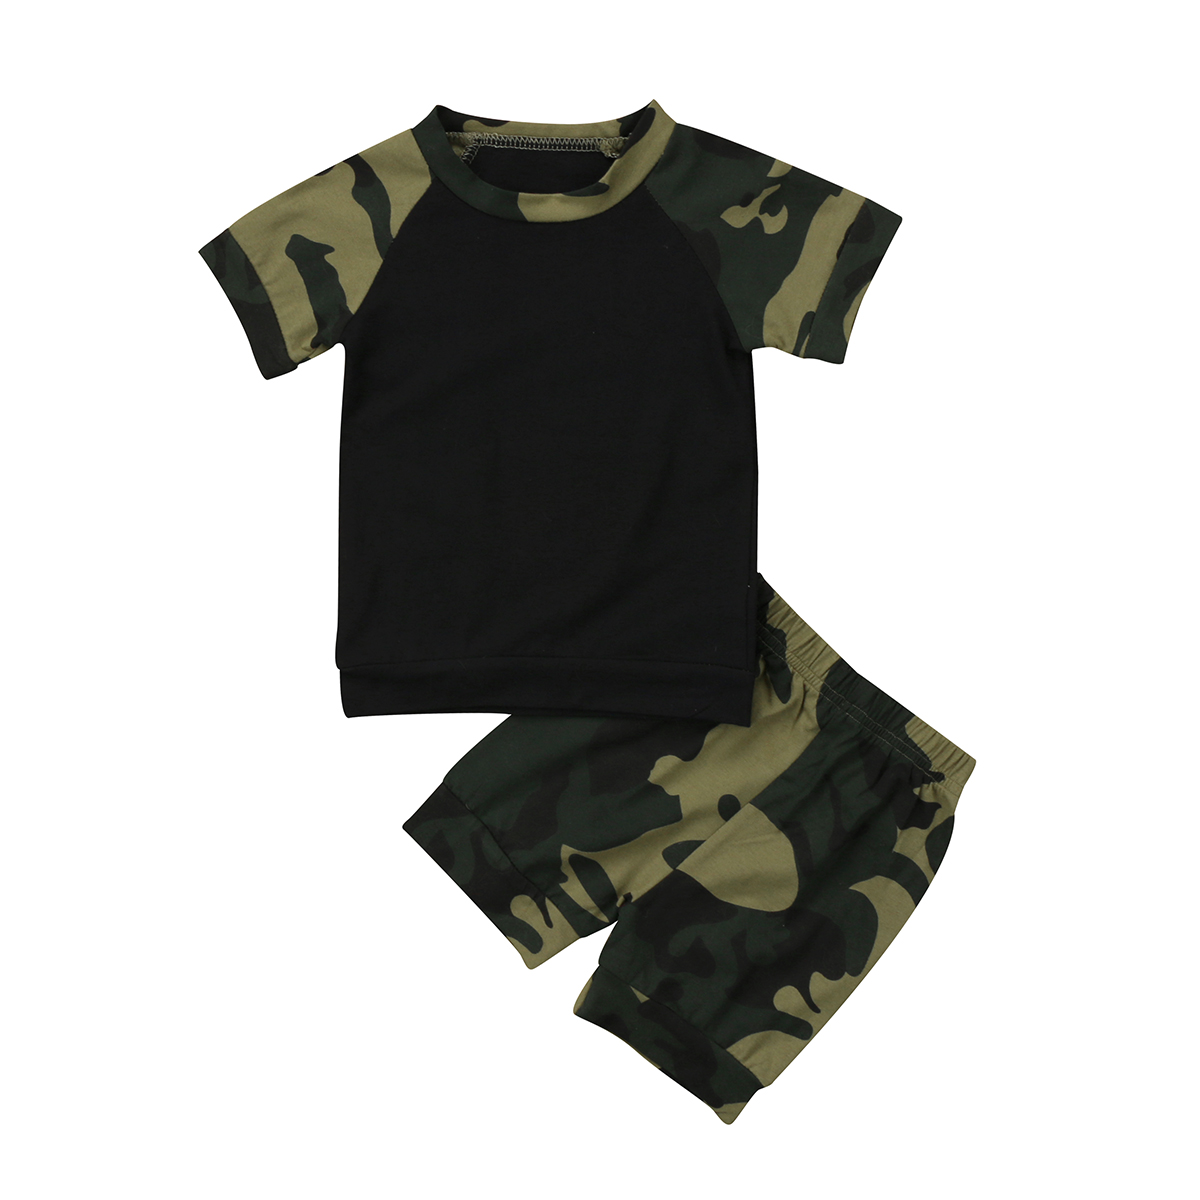 Infant Newborn Baby Boys Girls Summer Outfits Casual Camo T-Shirt Tops + Short Pants Clothing Set